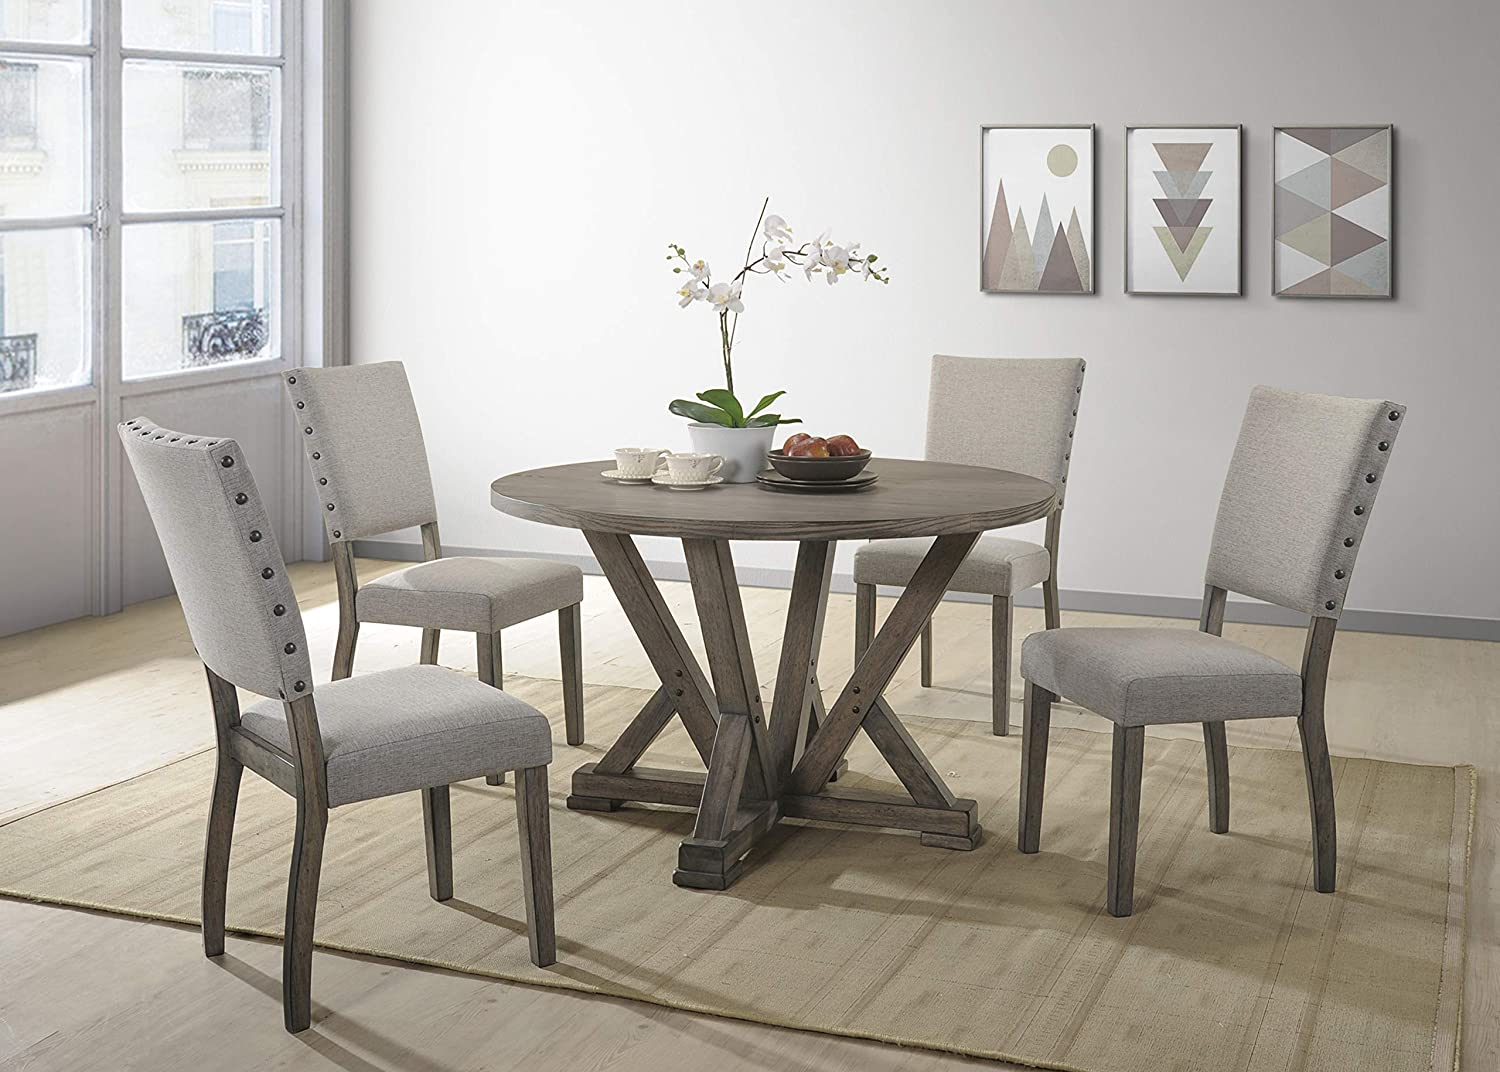 Best Master Furniture 5 Piece Dining Table Set Gray Amazon Co Uk Kitchen Home